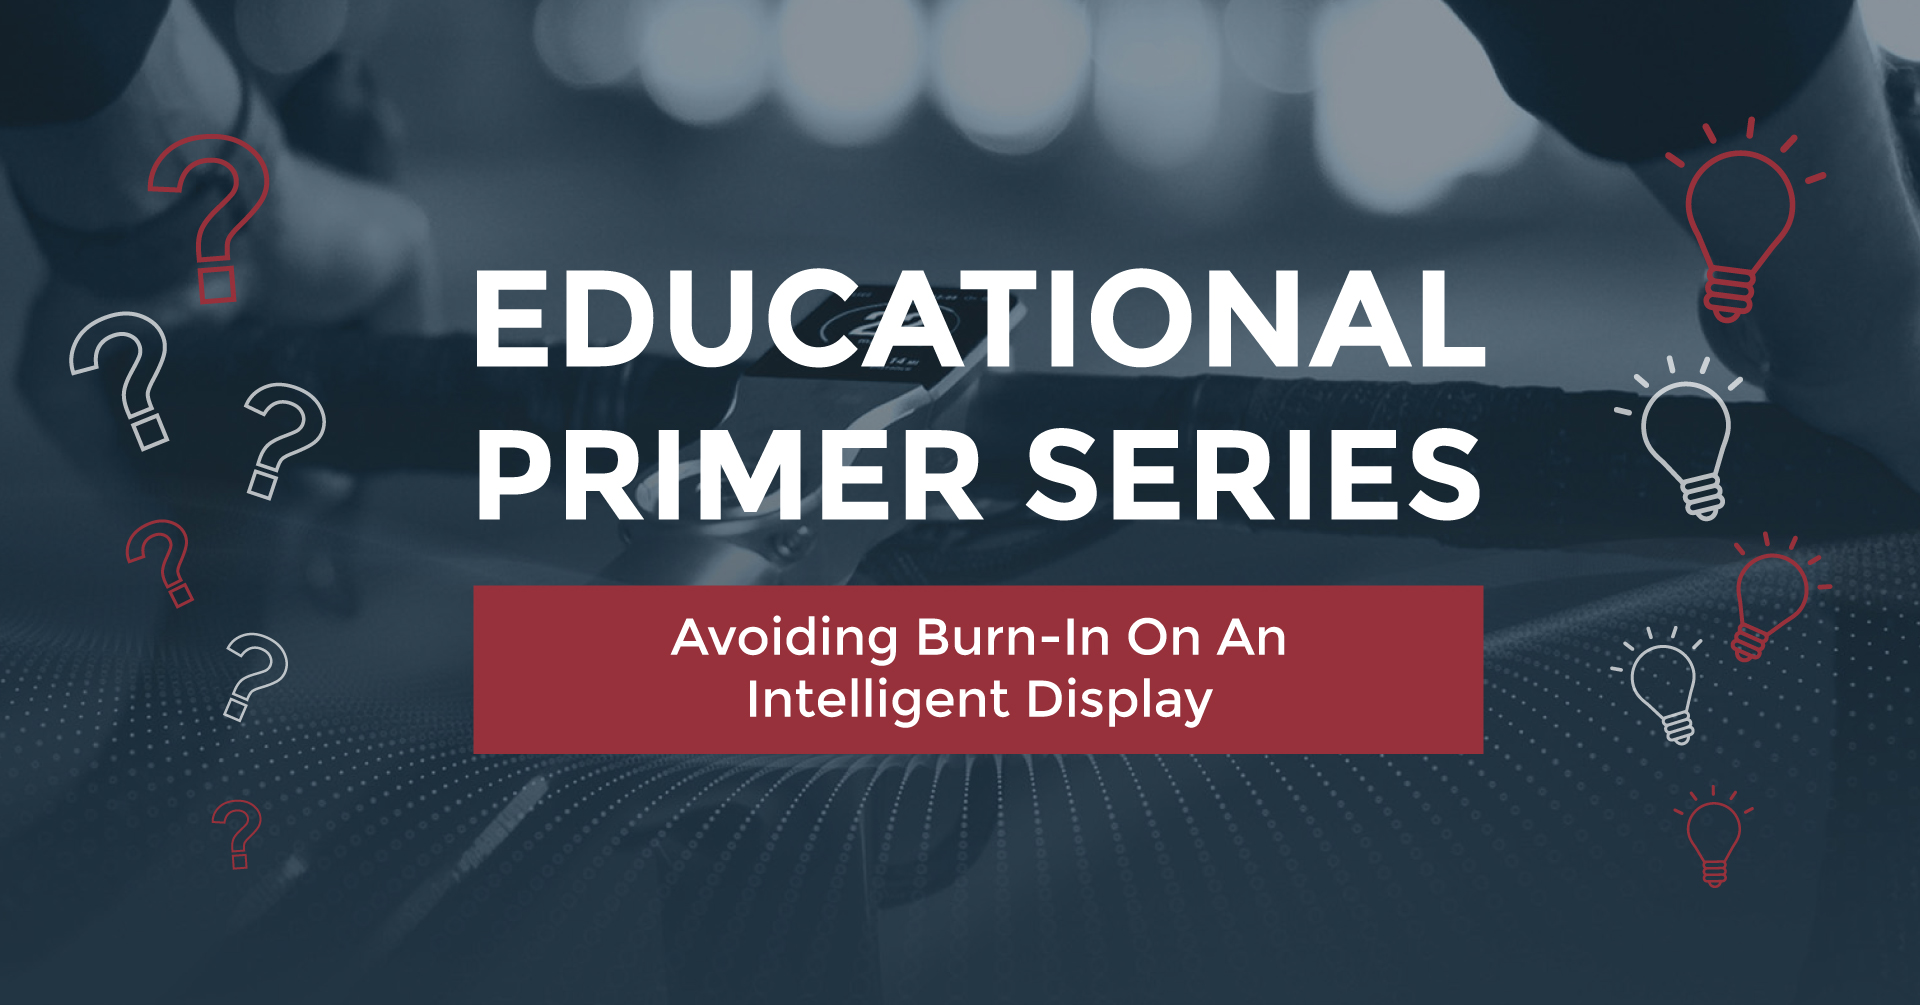 Educational Primer Series Avoiding Burn-In On An Intelligent Display